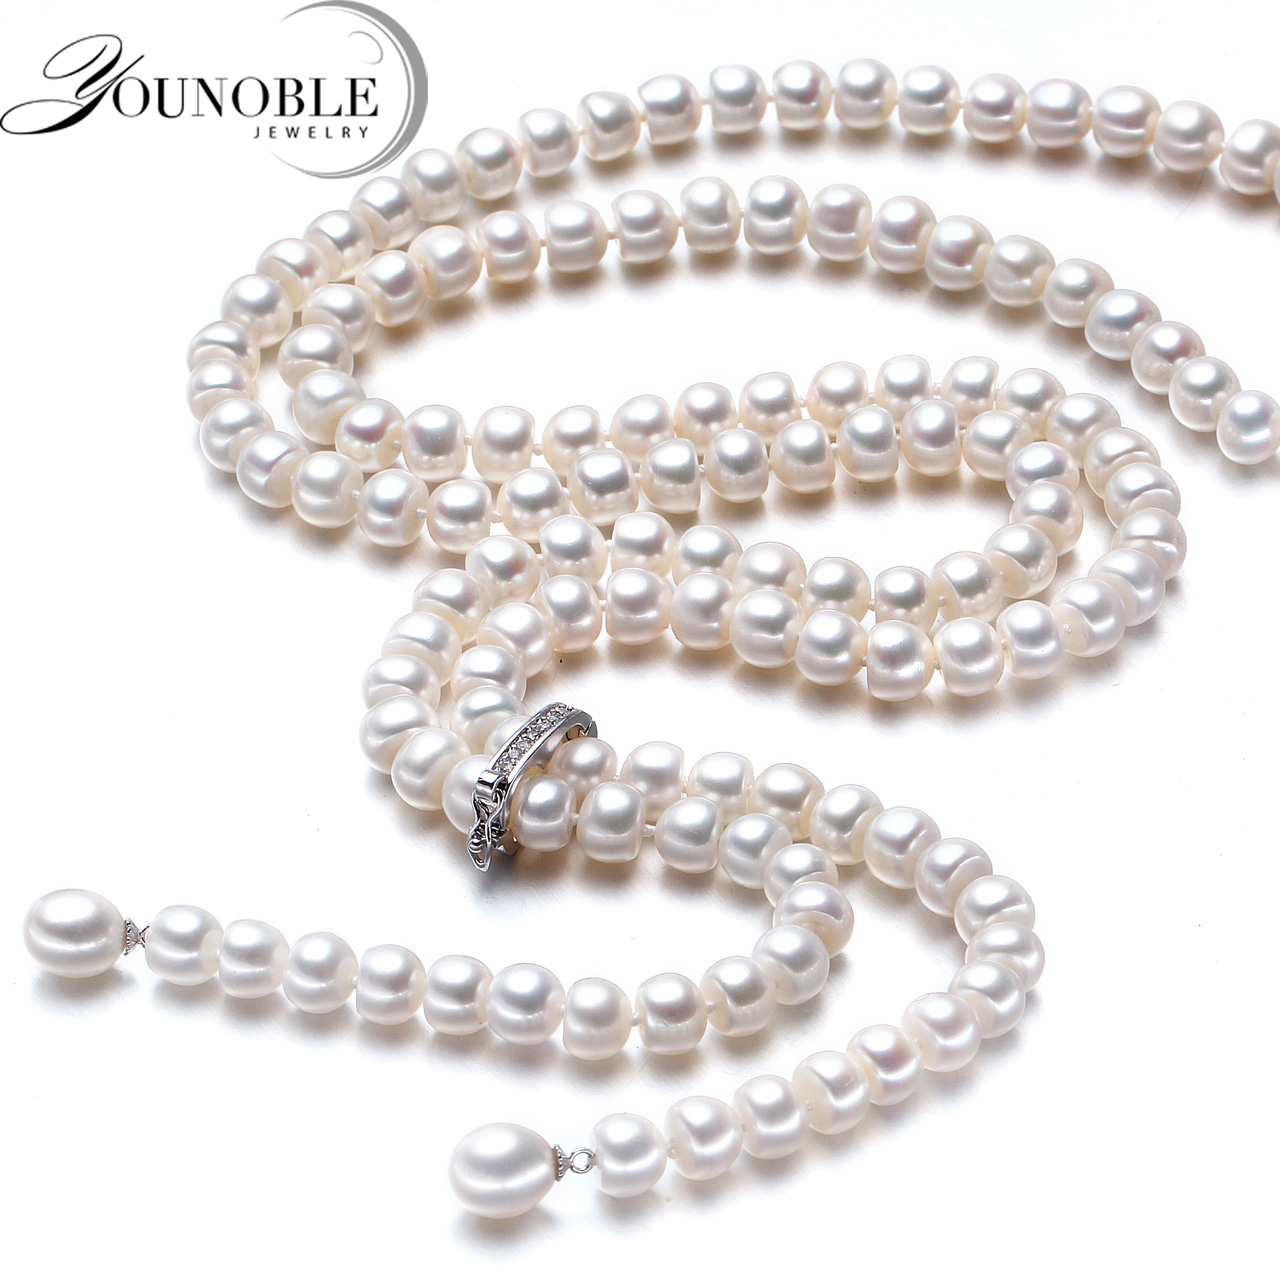 900mm Tassel Fashion Long Pearl Necklace Natural Freshwater Pearl 925 Sterling Silver Jewelry For Women Statement Necklace Gift цена